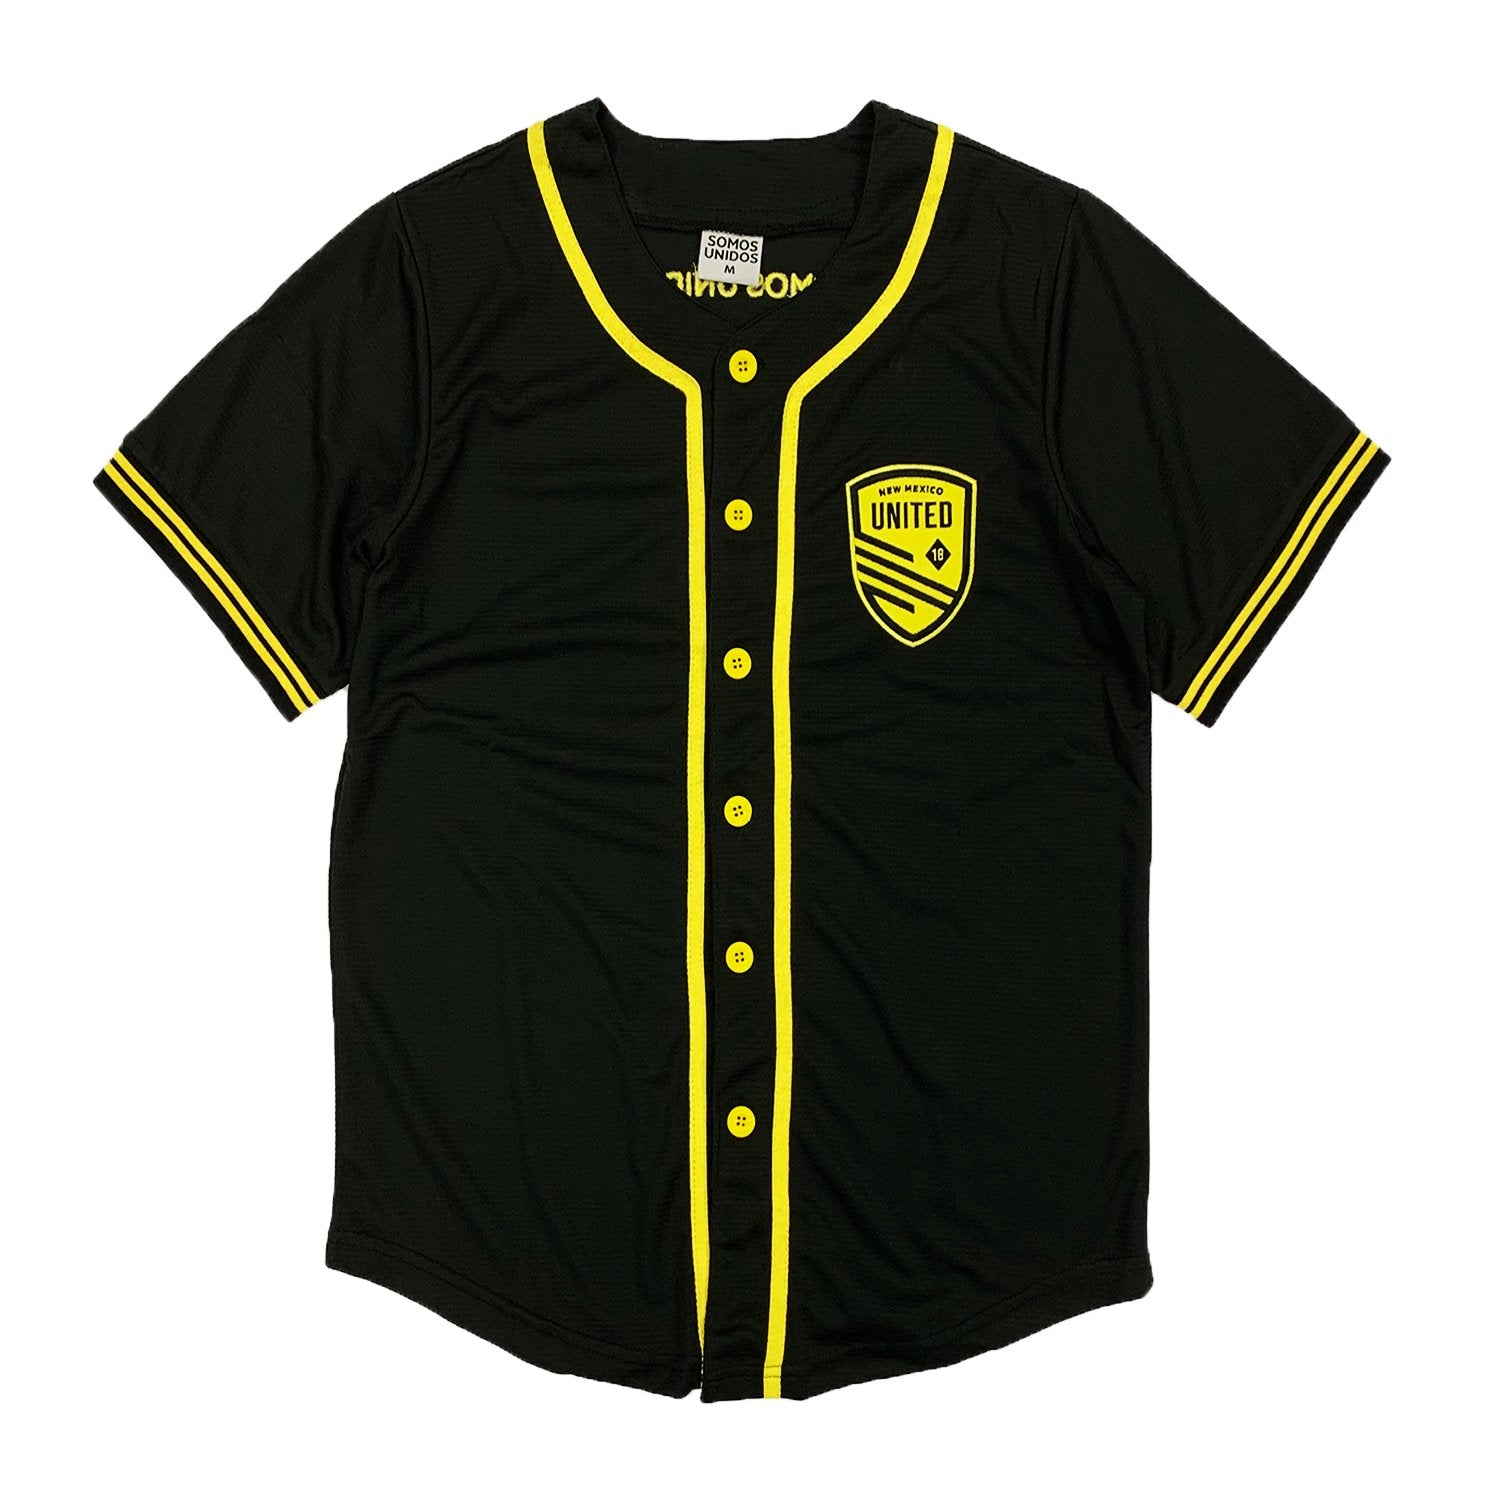 New Mexico United Baseball Jersey